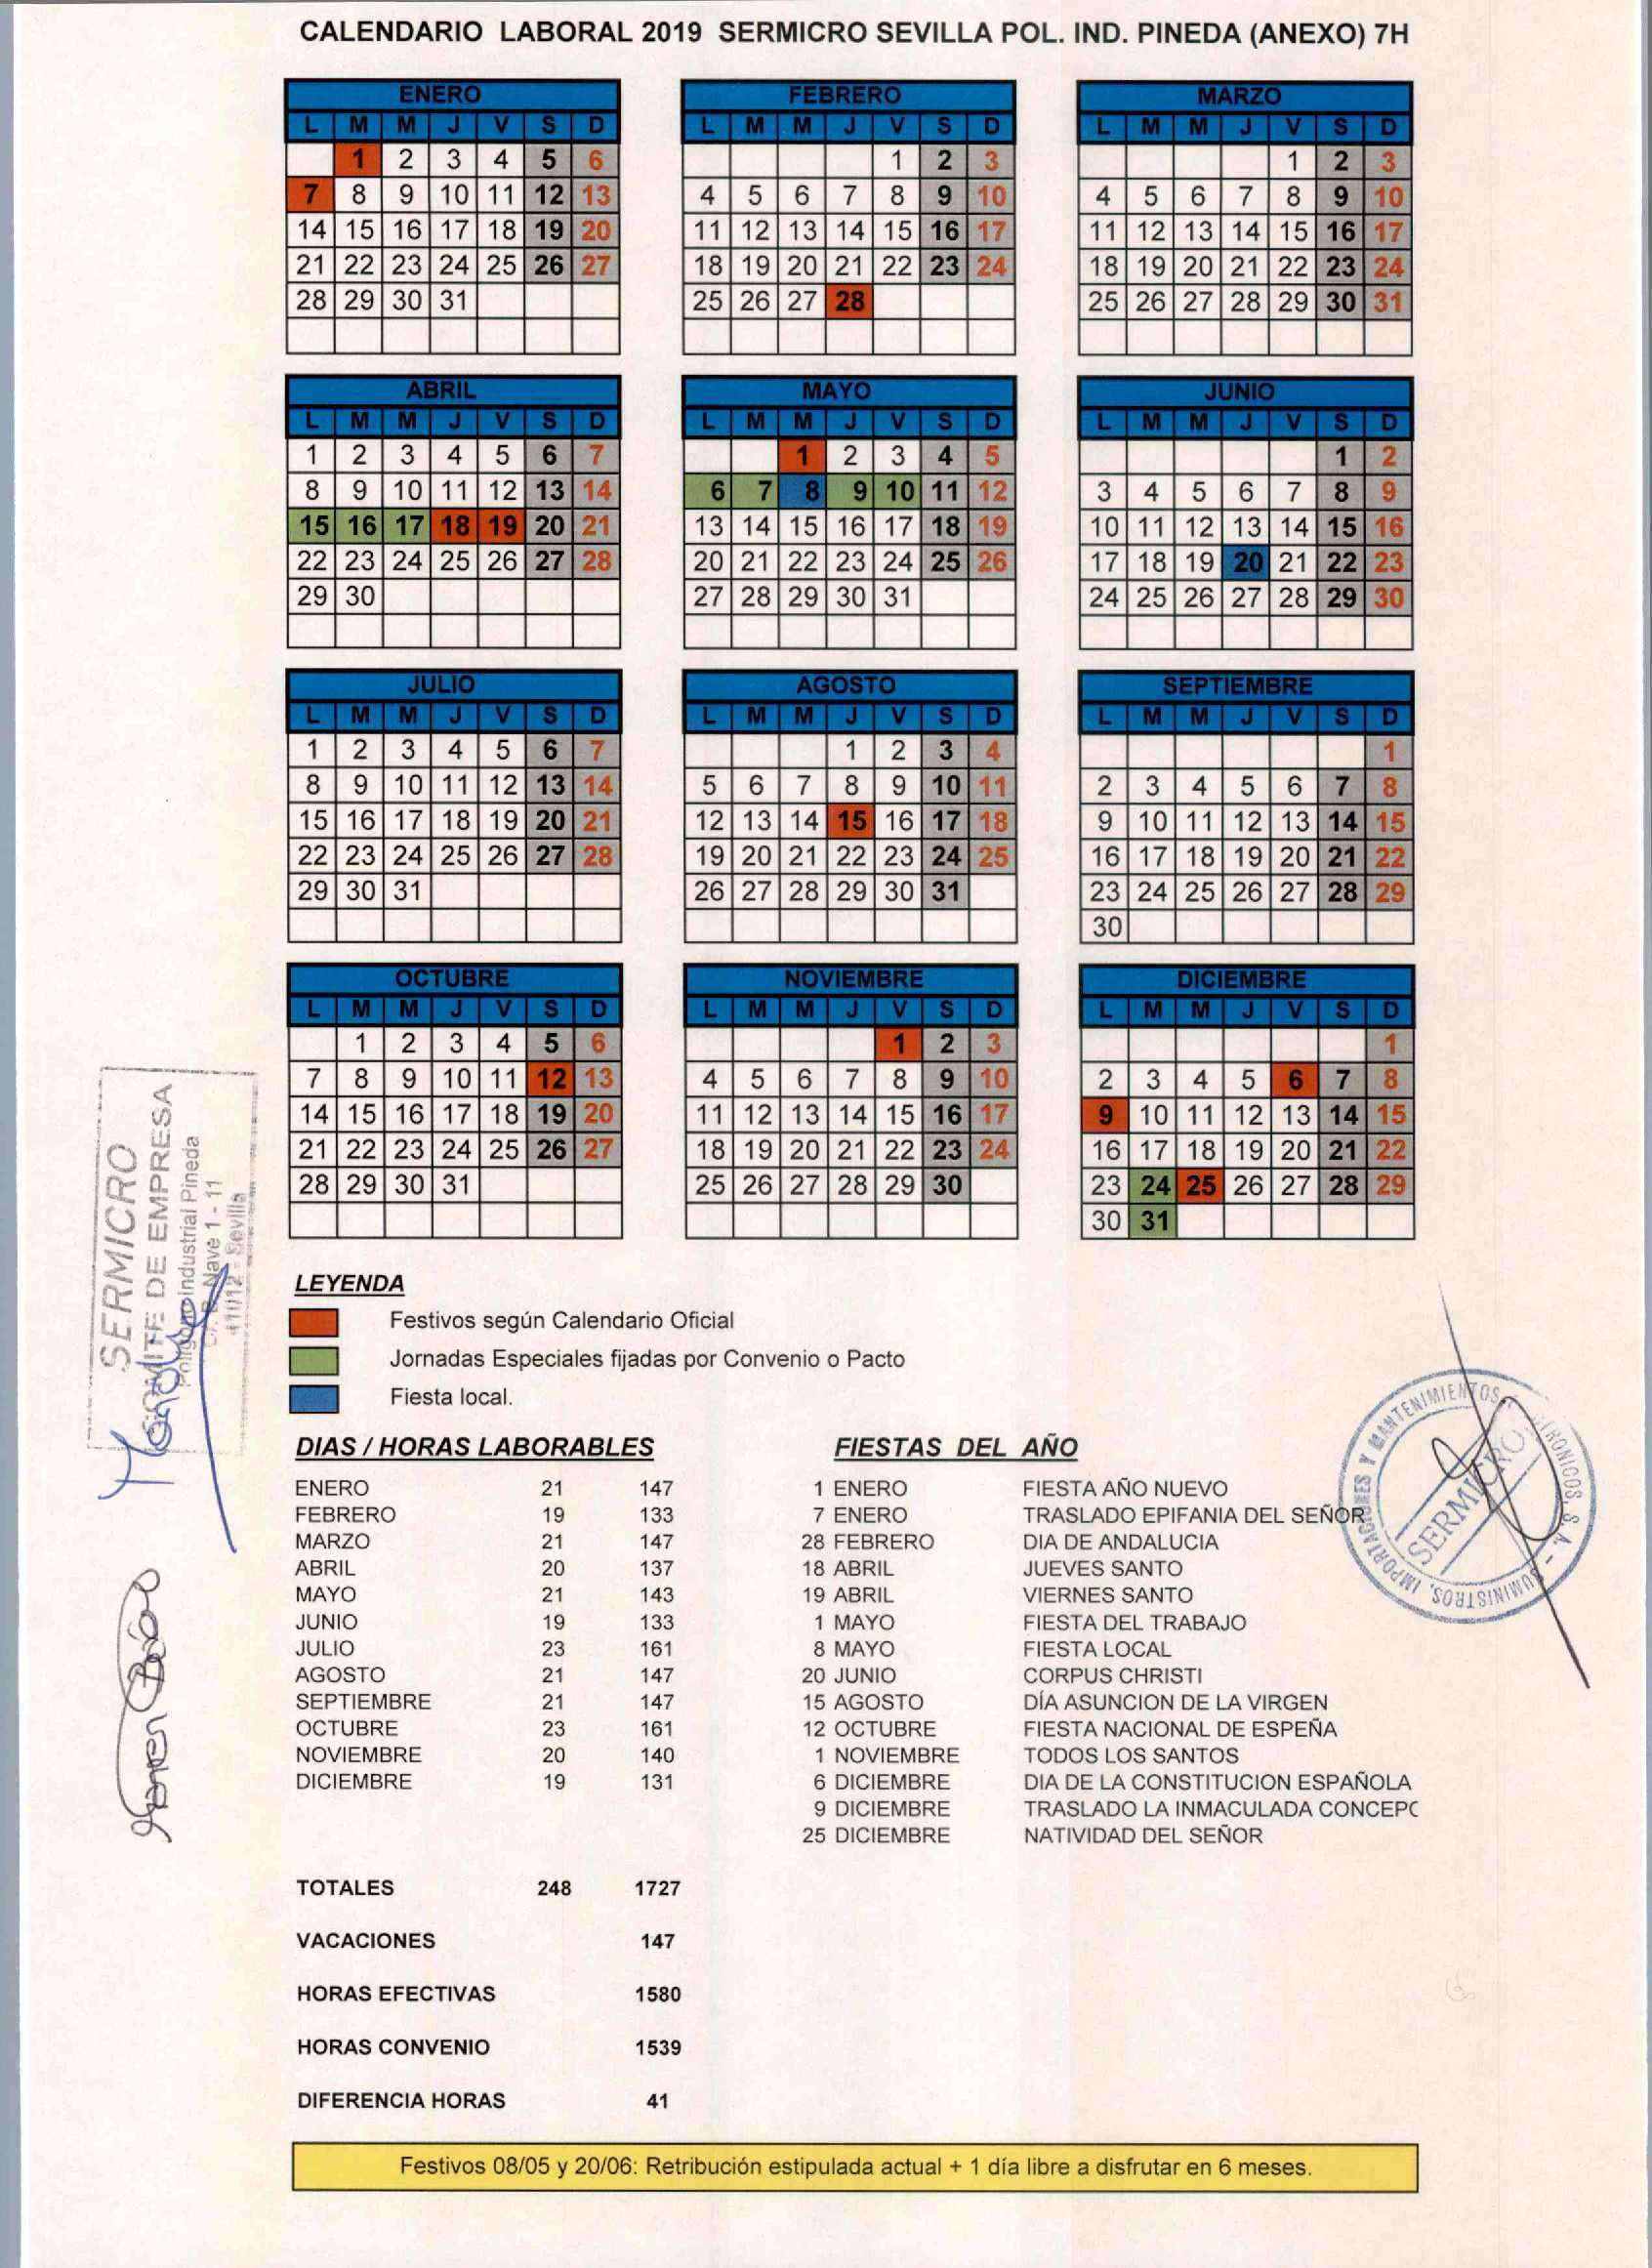 Calendario Sermicro Anexo 7H 2019